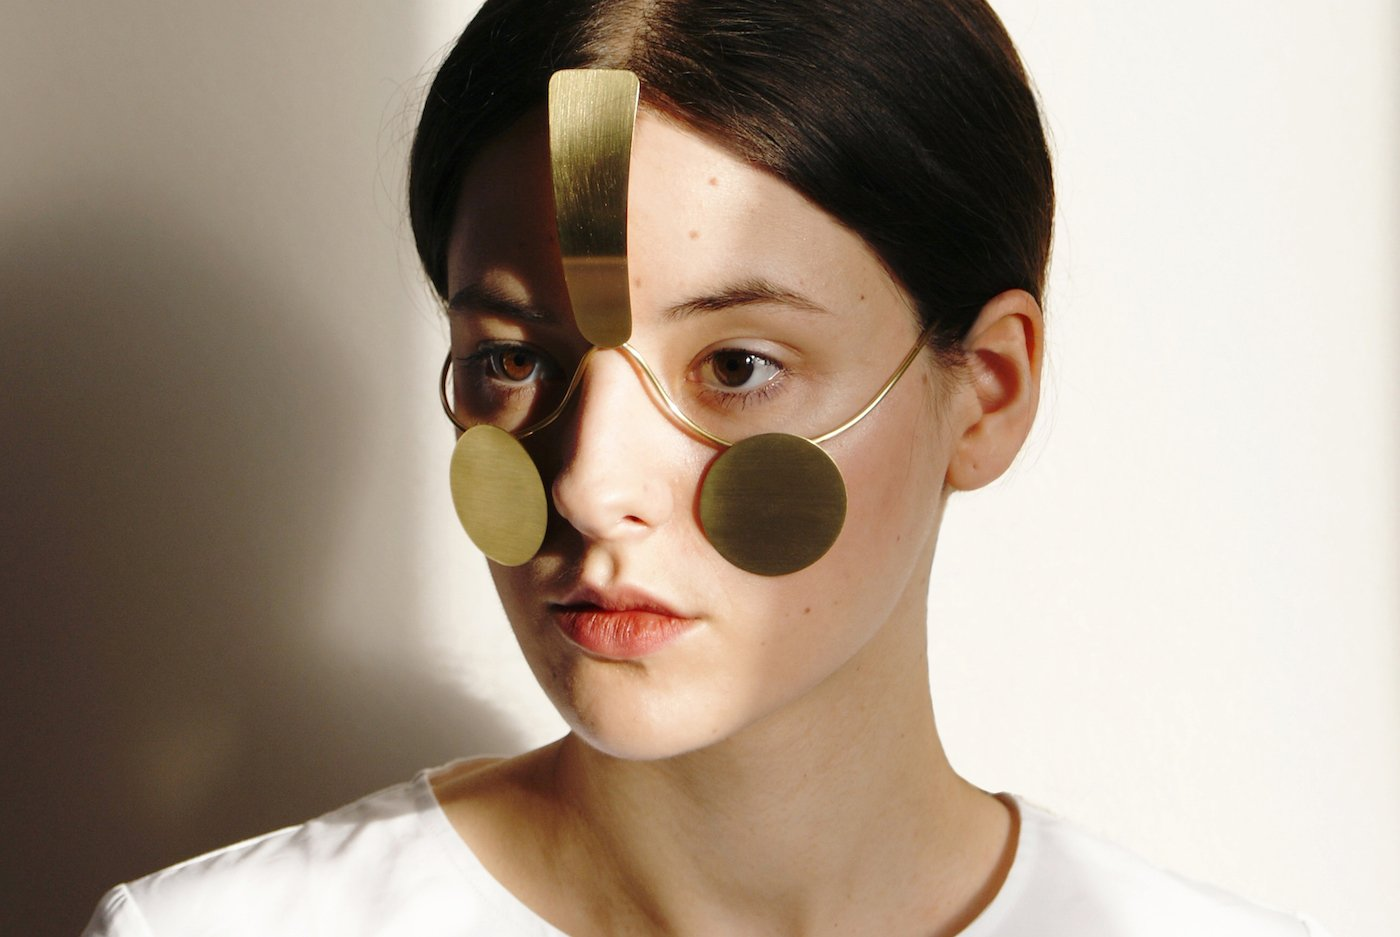 Would You Wear This Avant Garde Jewellery To Protect Your Identity From Cctv The Calvert Journal